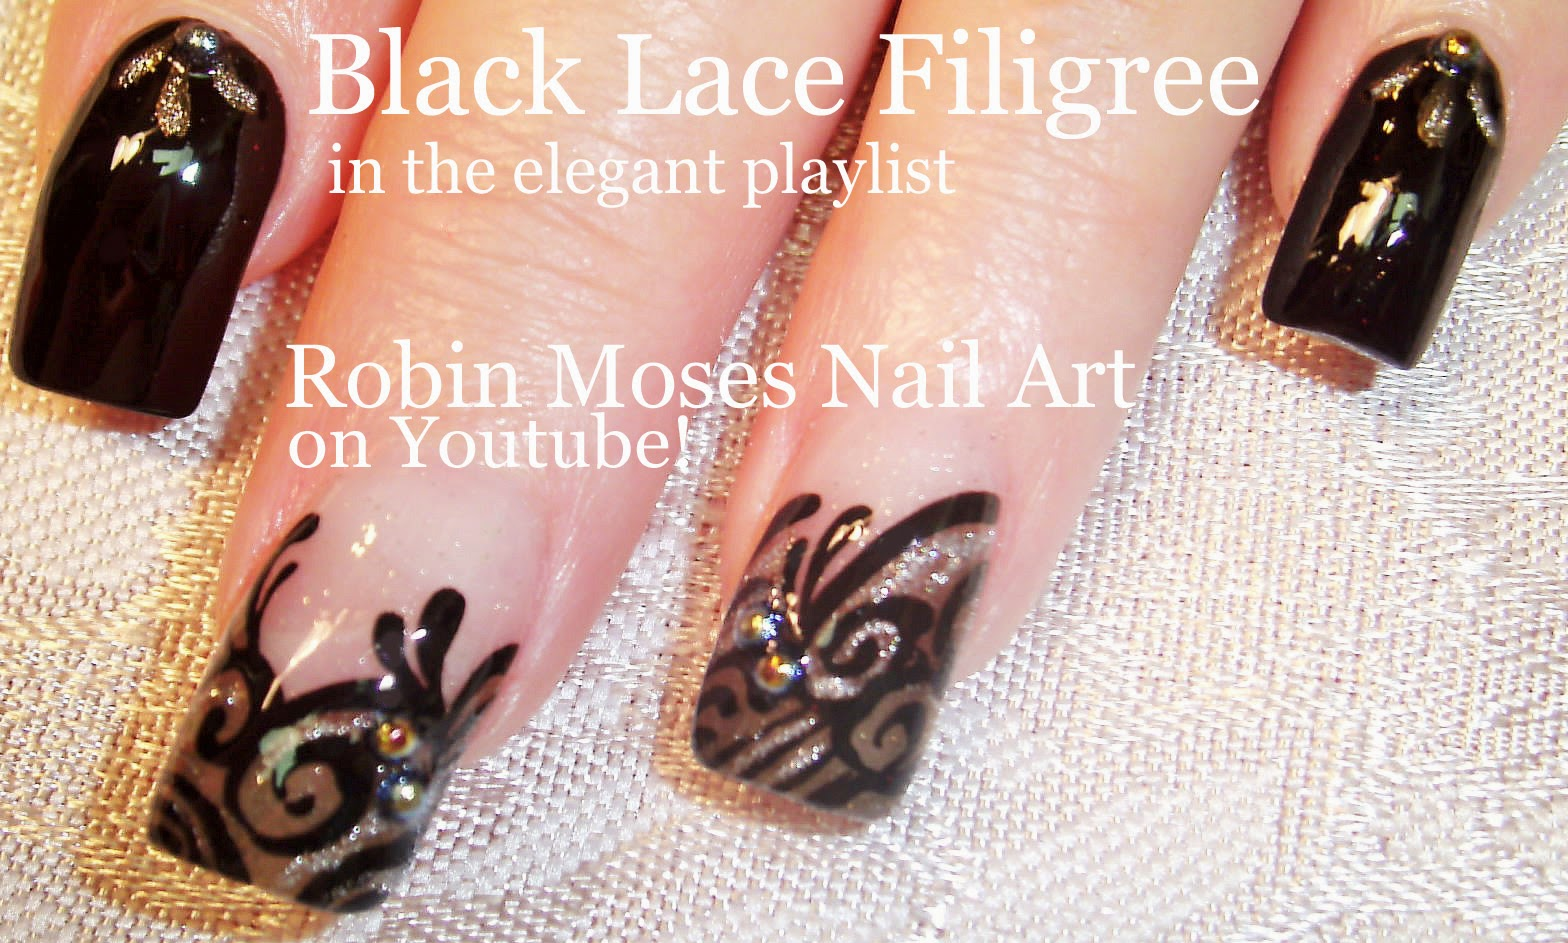 Nail Art By Robin Moses Lace Nails Spring Nails 2015 Nail Art